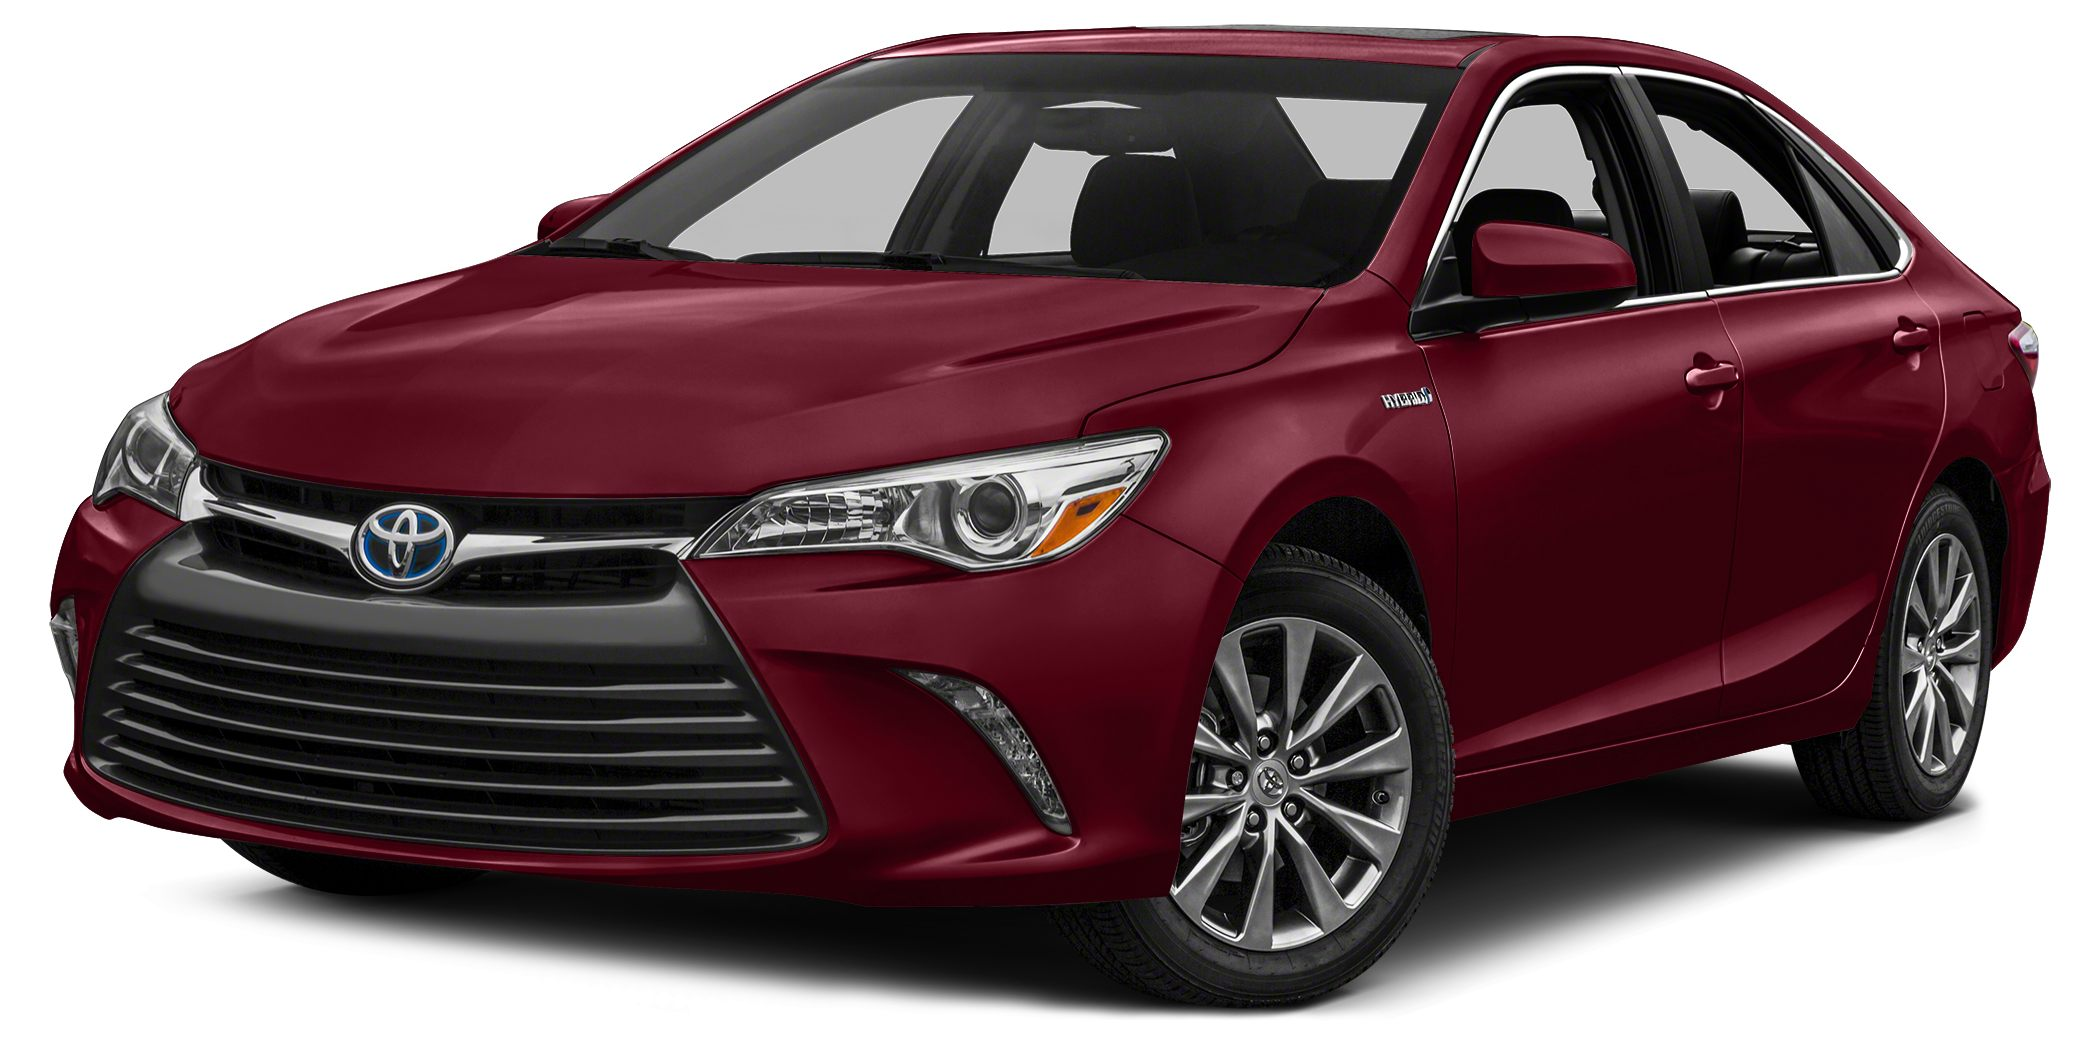 2015 Toyota Camry Hybrid SE All prices plus tax title license  doc fee 395 with approved cr